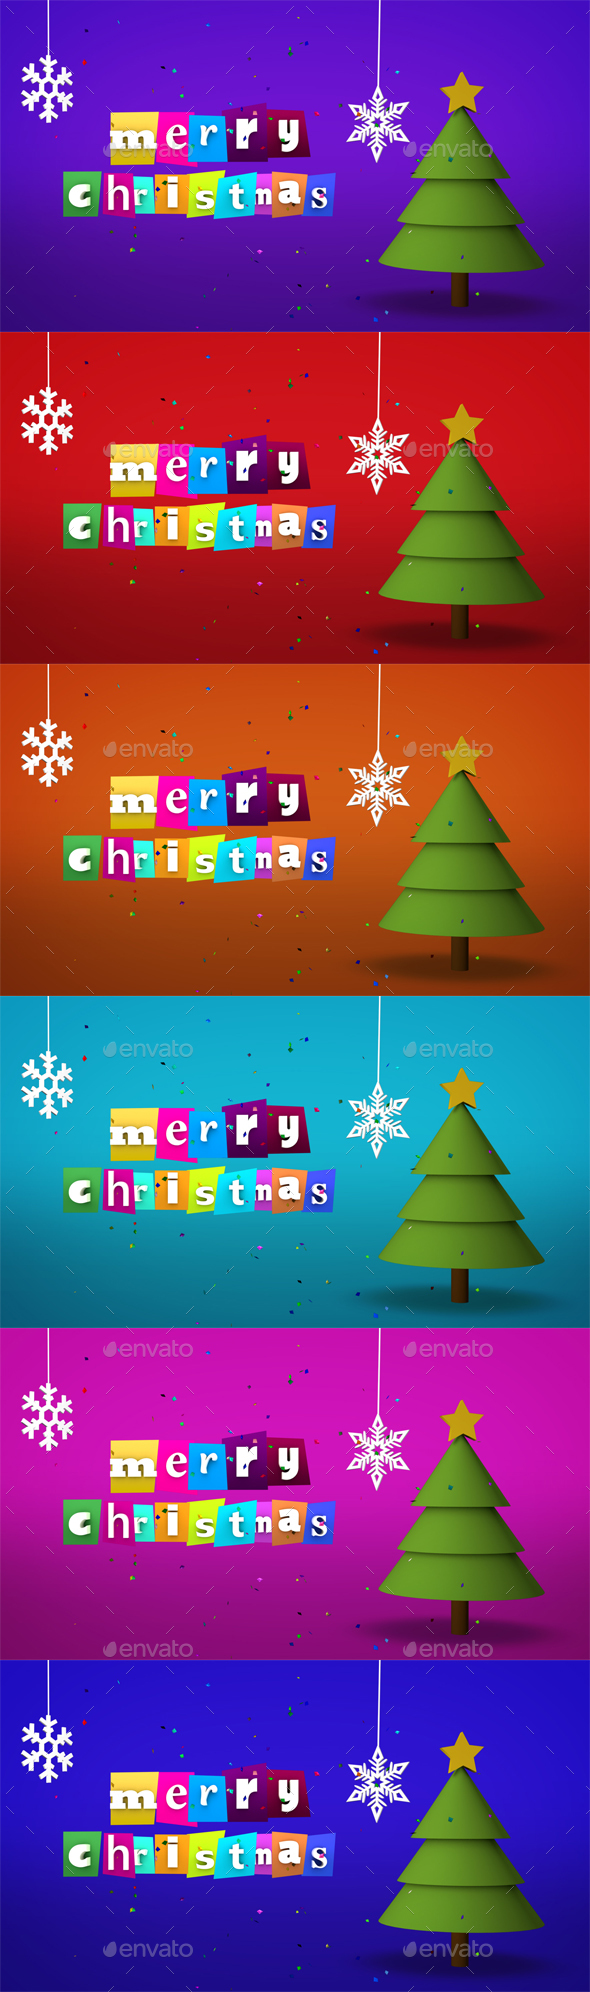 Merry Christmas - 3D Backgrounds